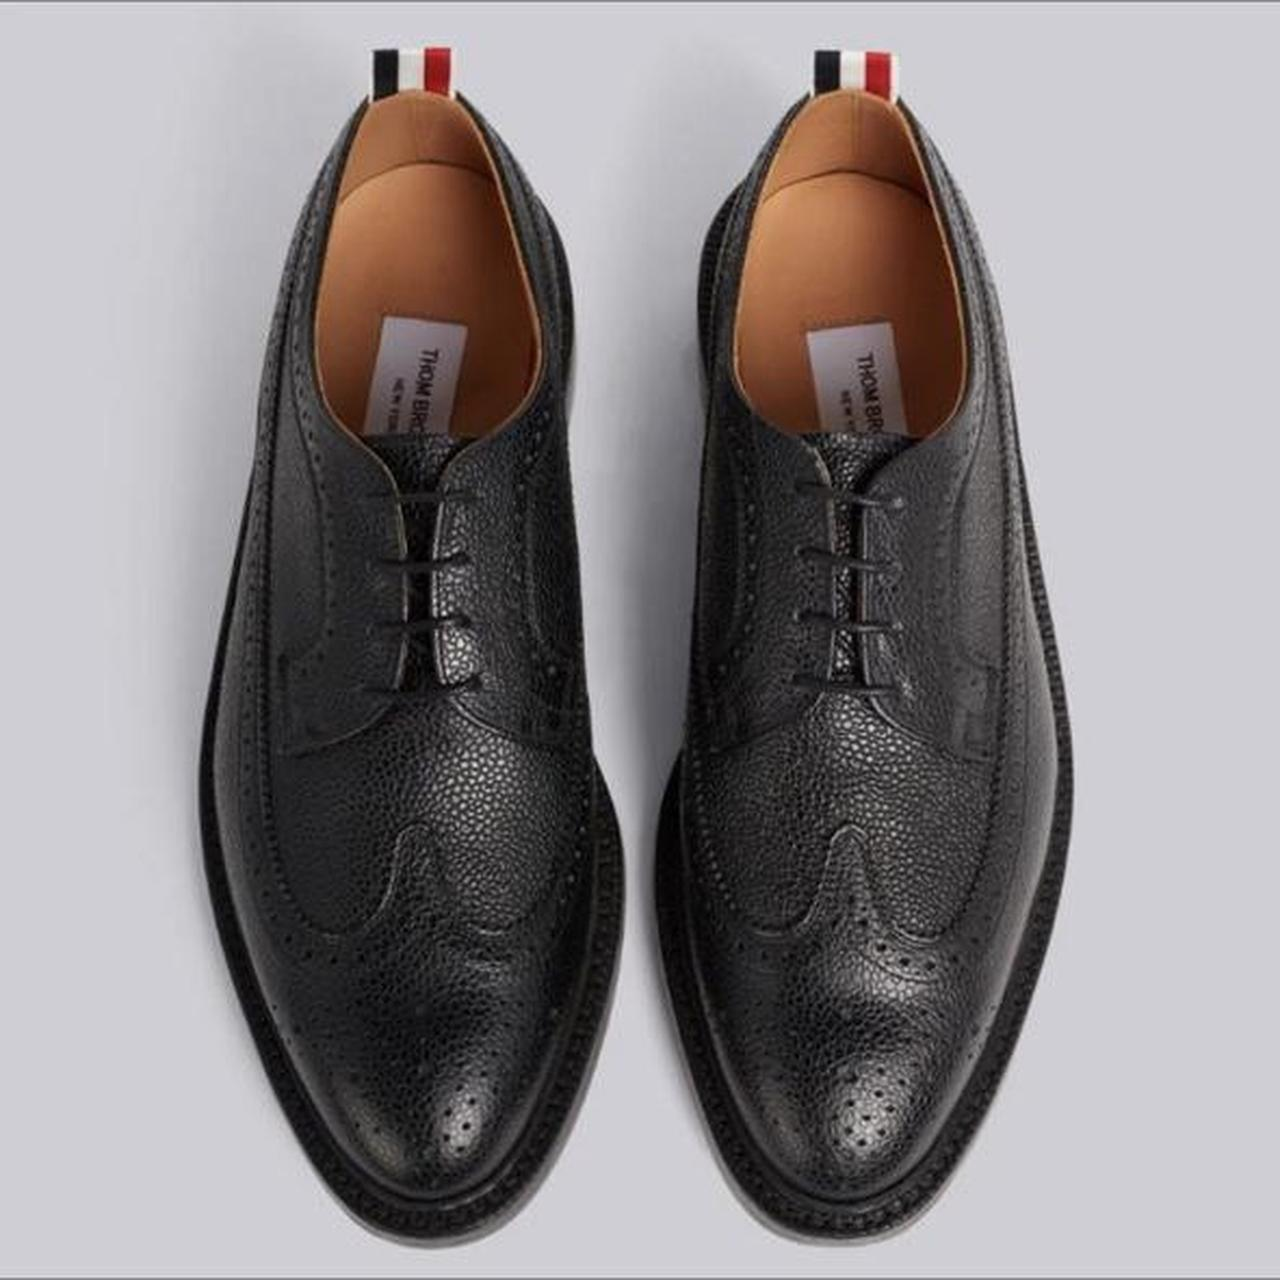 Product Image 1 - Thom Browne CREPE SOLE LONGWING